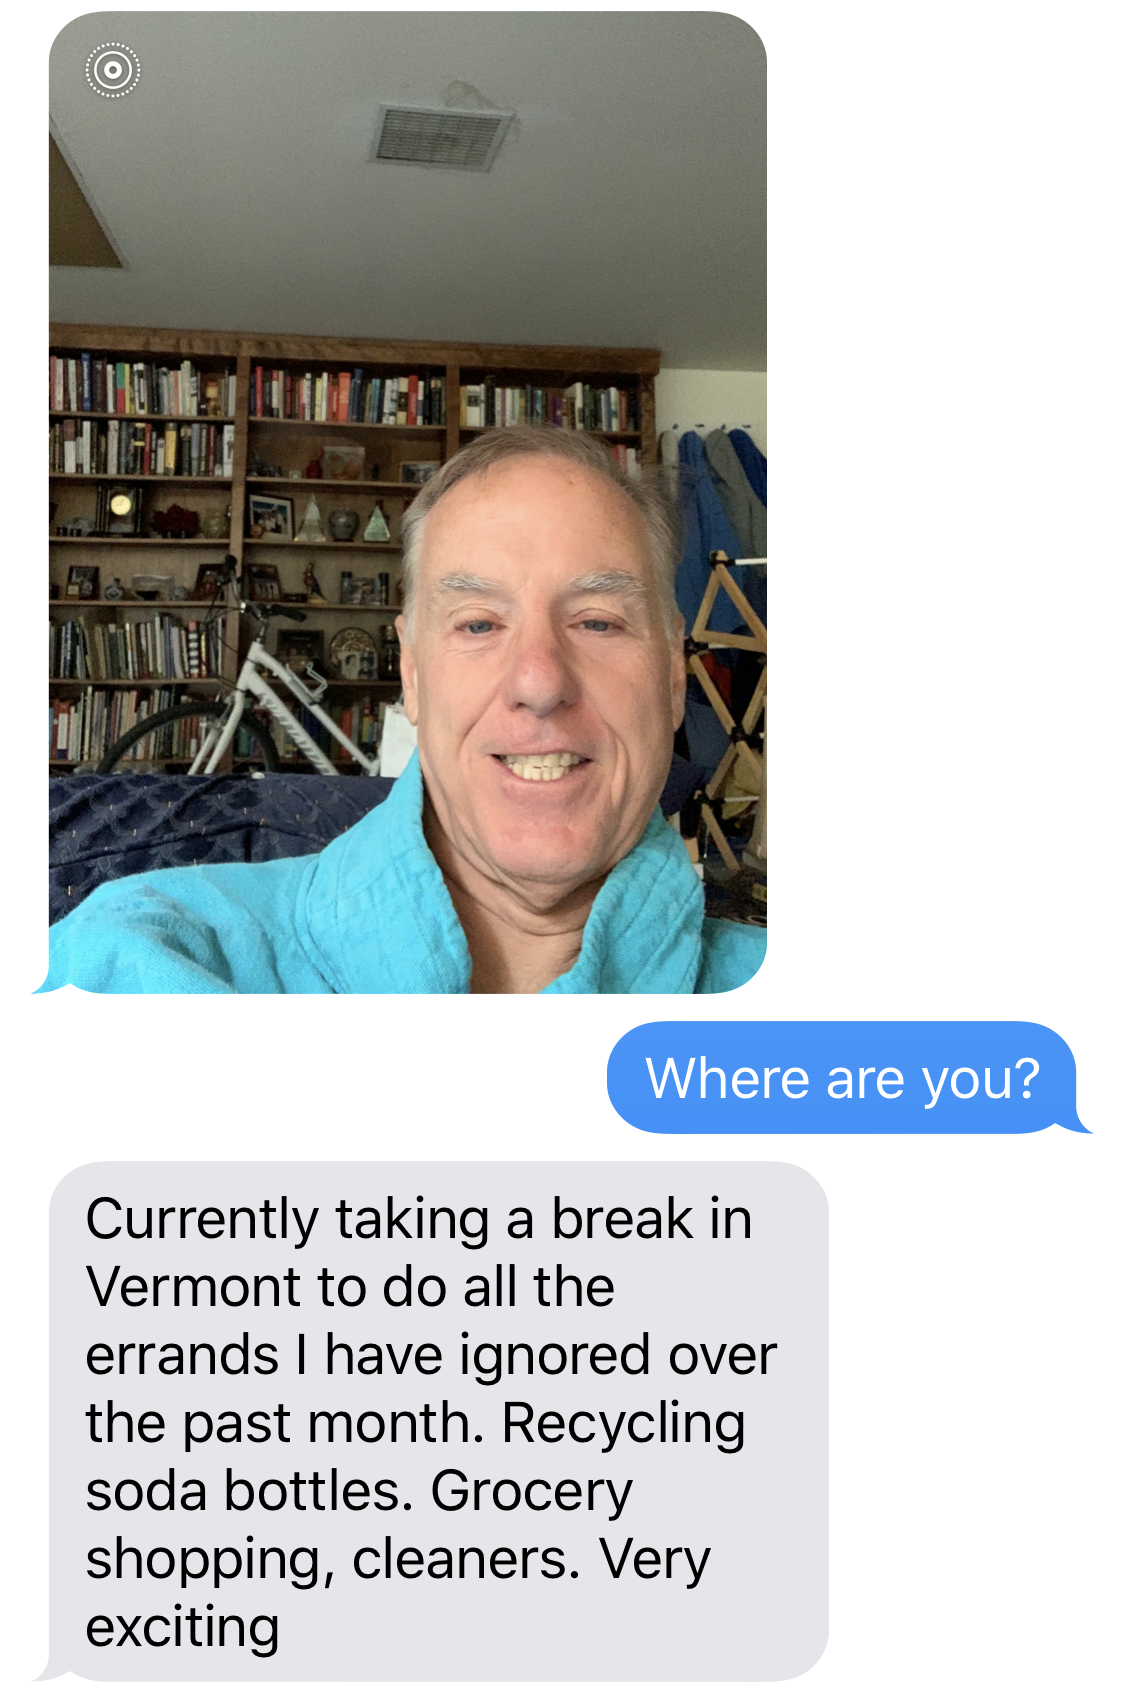 IMAGE DESCRIPTION: Selfie of Howard Dean.  BEN SMITH: Where are you?  HOWARD DEAN: Currently taking a break in Vermont to do all the errands I have ignored over the past month. Recycling soda bottles. Grocery shopping, cleaners. Very exciting.